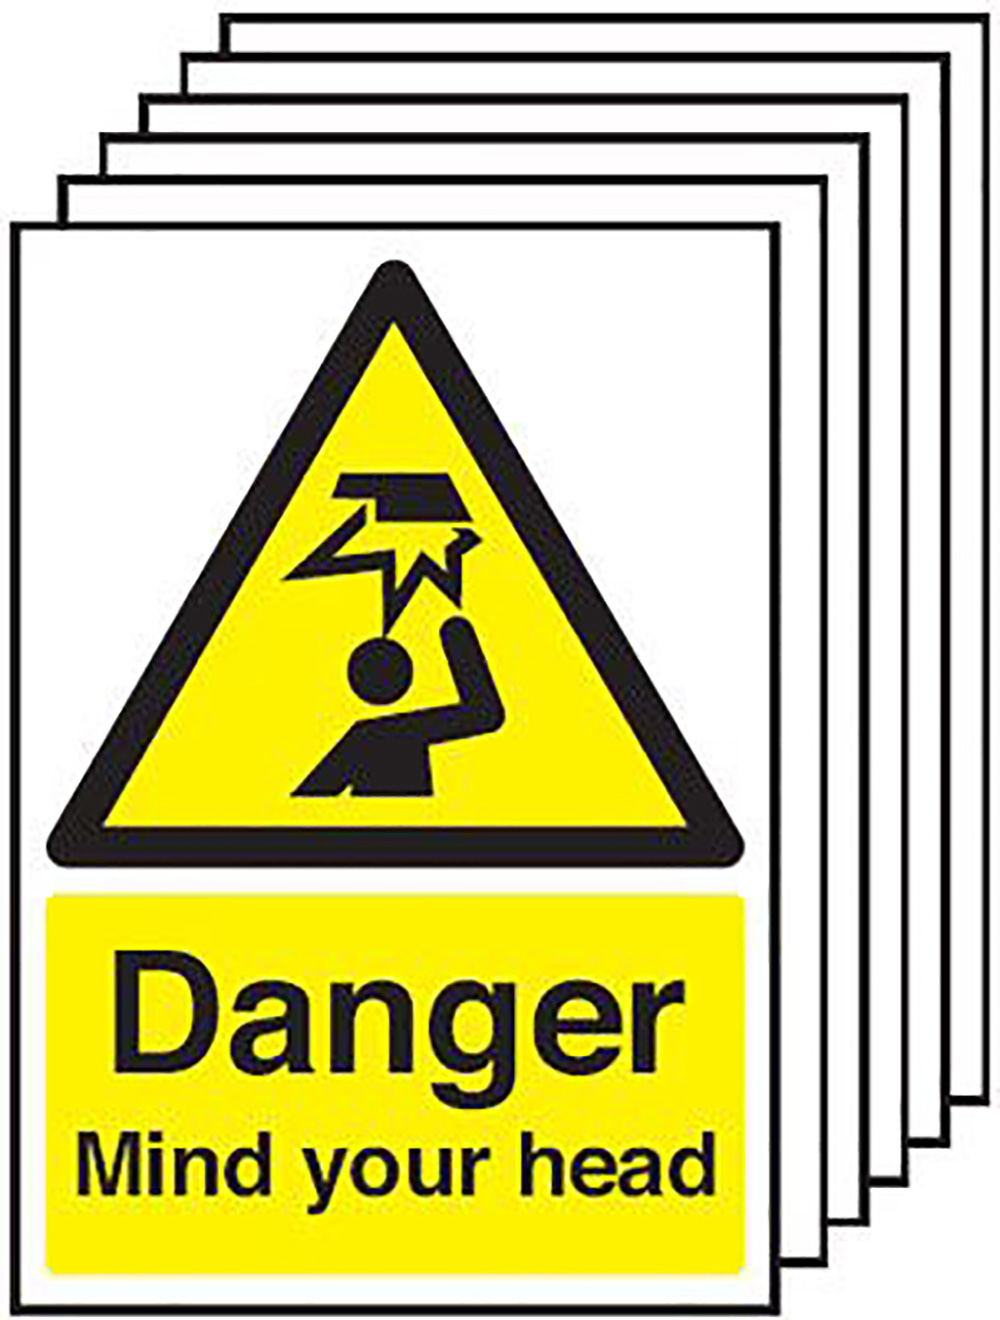 Danger Mind Your Head  420x297mm Self Adhesive Vinyl Safety Sign Pack of 6